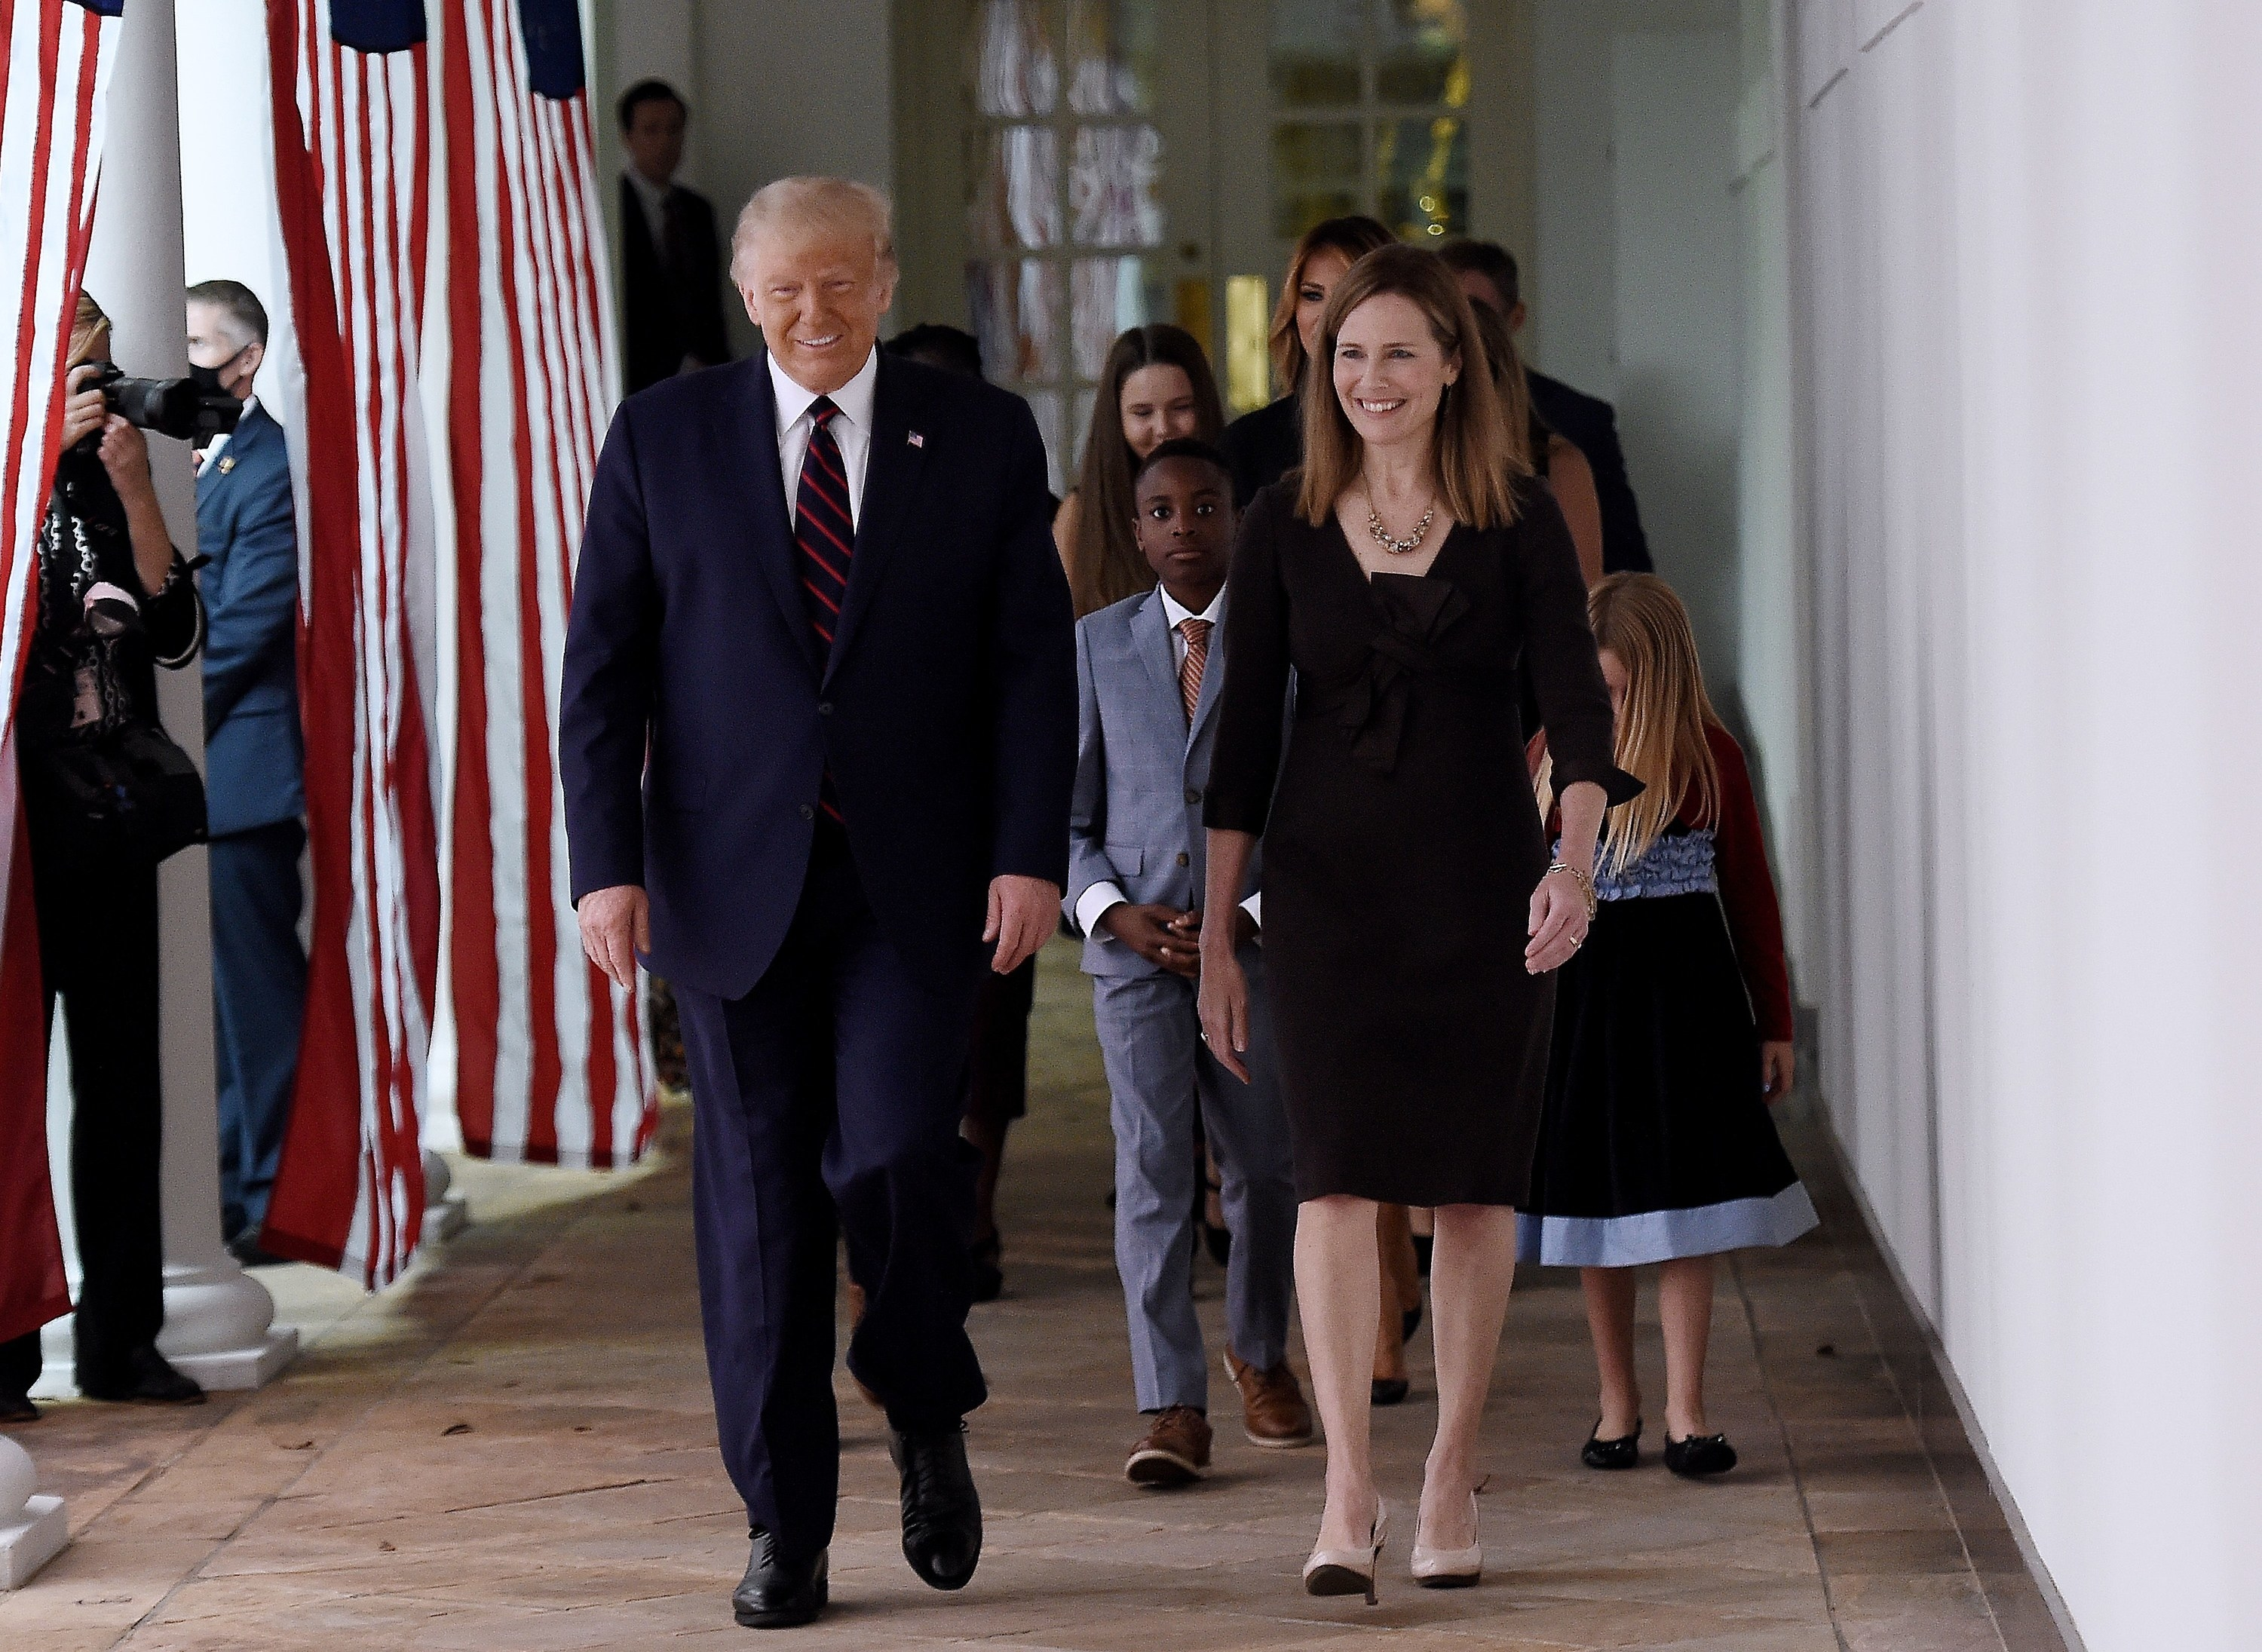 Amy Coney and Trump walking to the rose garden